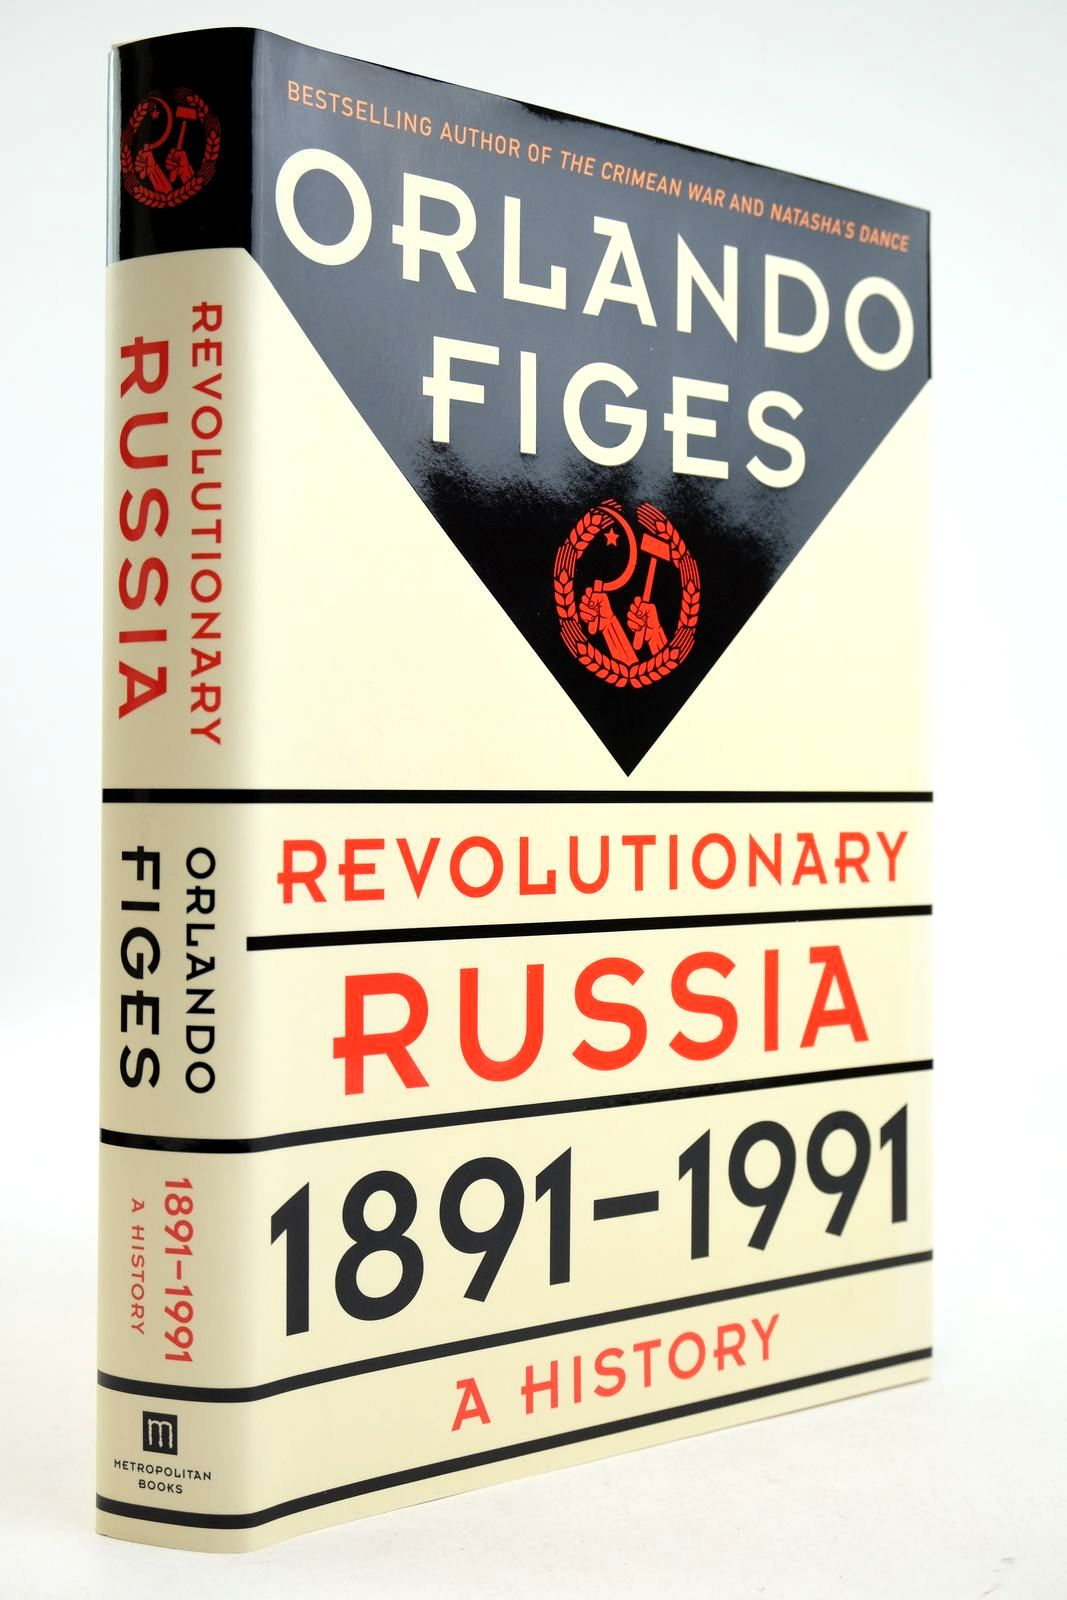 Photo of REVOLUTIONARY RUSSIA 1891-1991 A HISTORY- Stock Number: 2132852